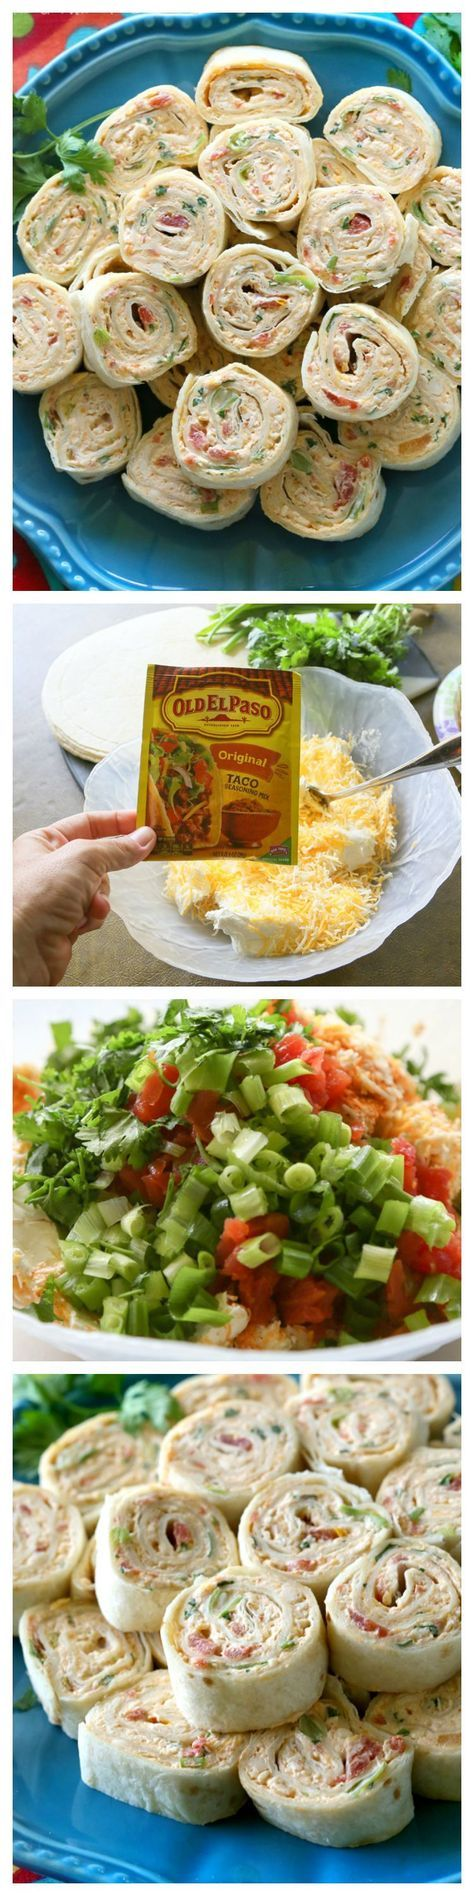 These Chicken Enchilada Roll Ups are a great appetizer for parties! Easy to make ahead and easy to serve. http://the-girl-who-ate-everything.com